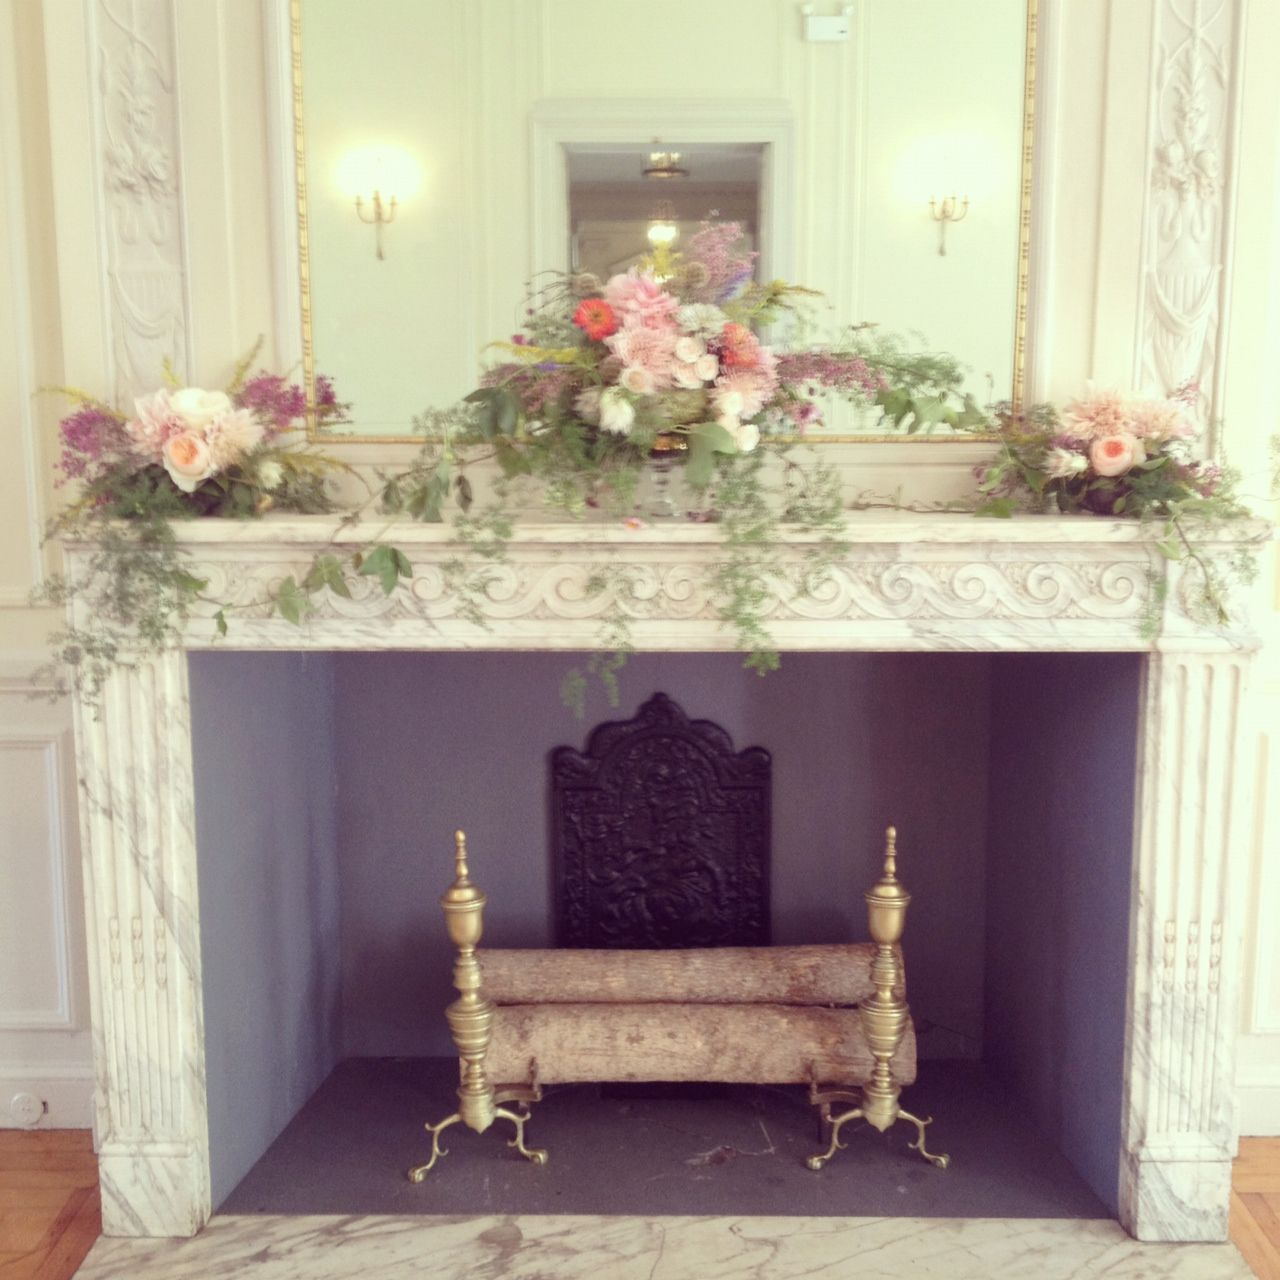 Mantle Wedding Altar: Wedding Fireplaces - Google Search